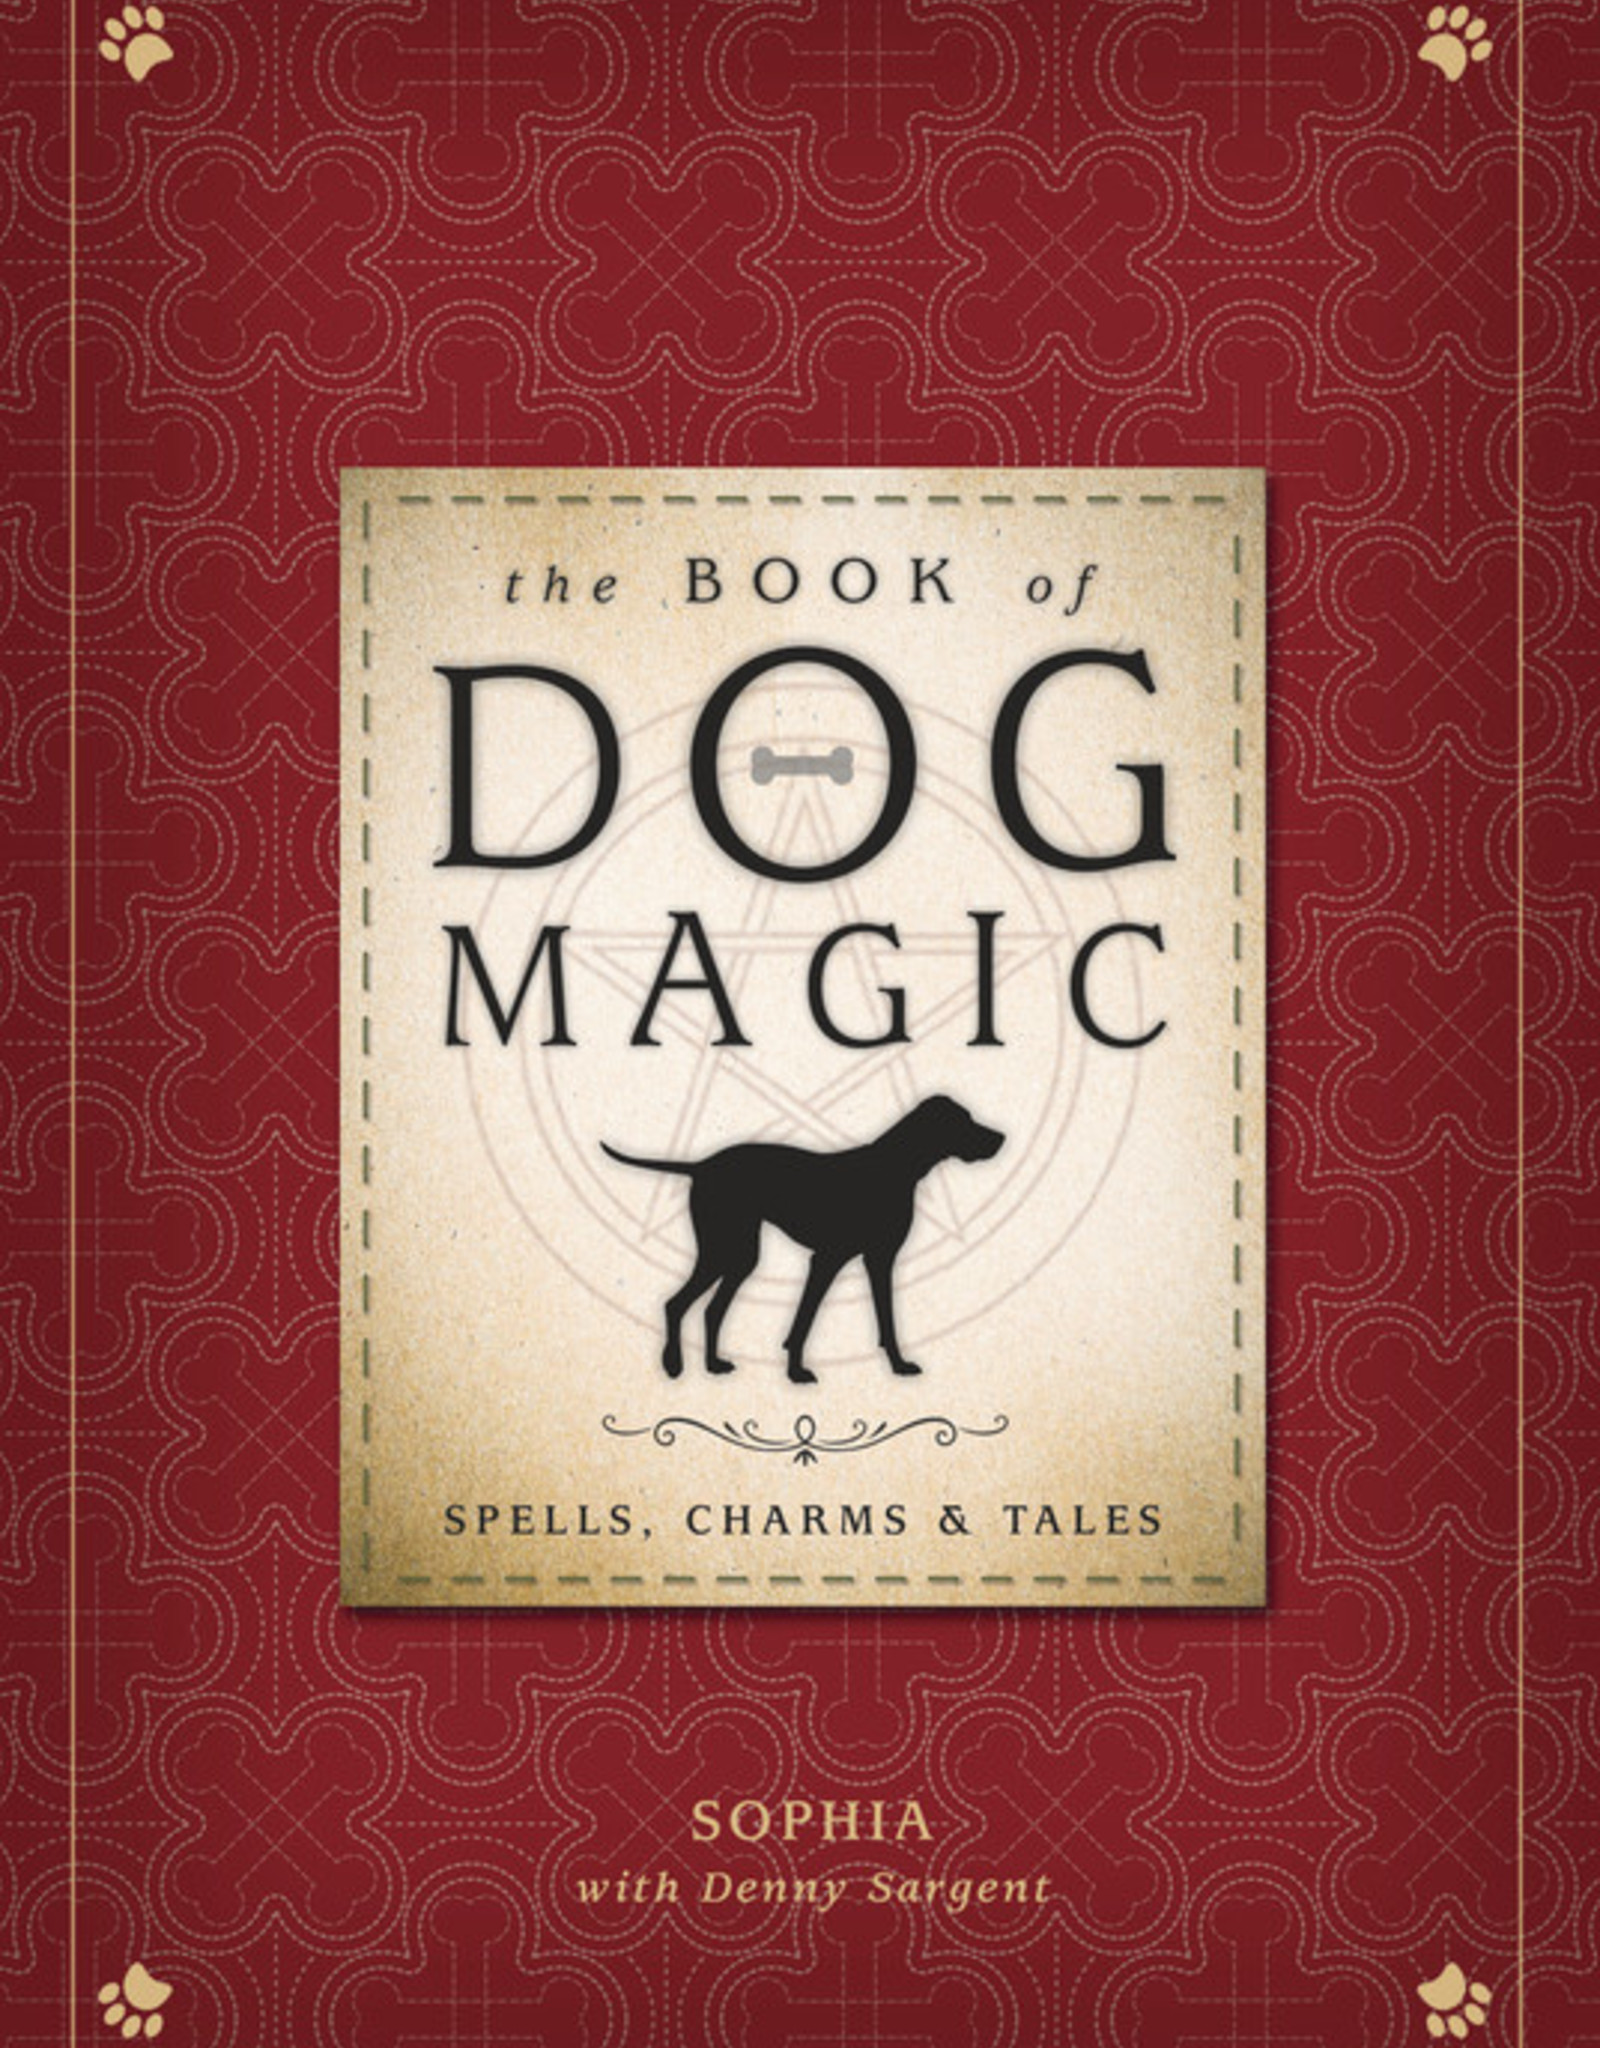 Llewelyn The Book of Dog Magic